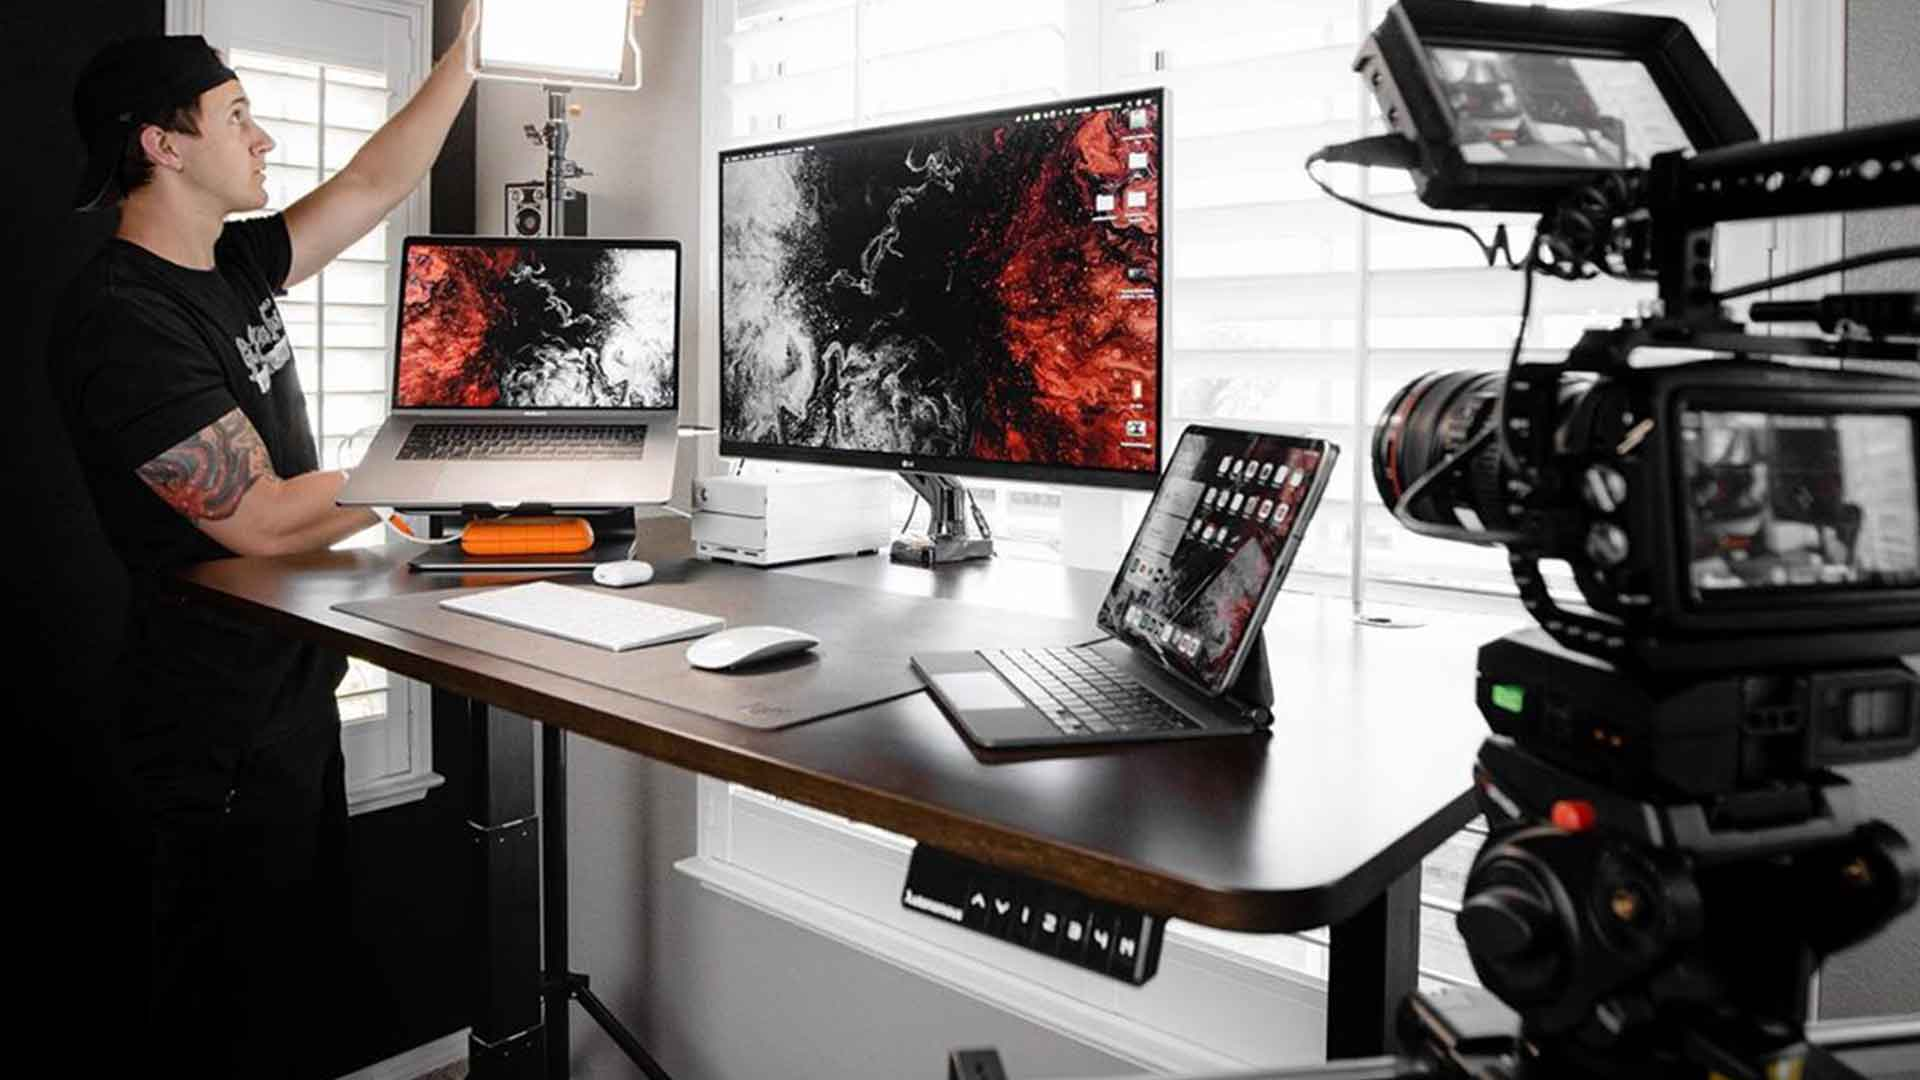 image relates to standing-desks